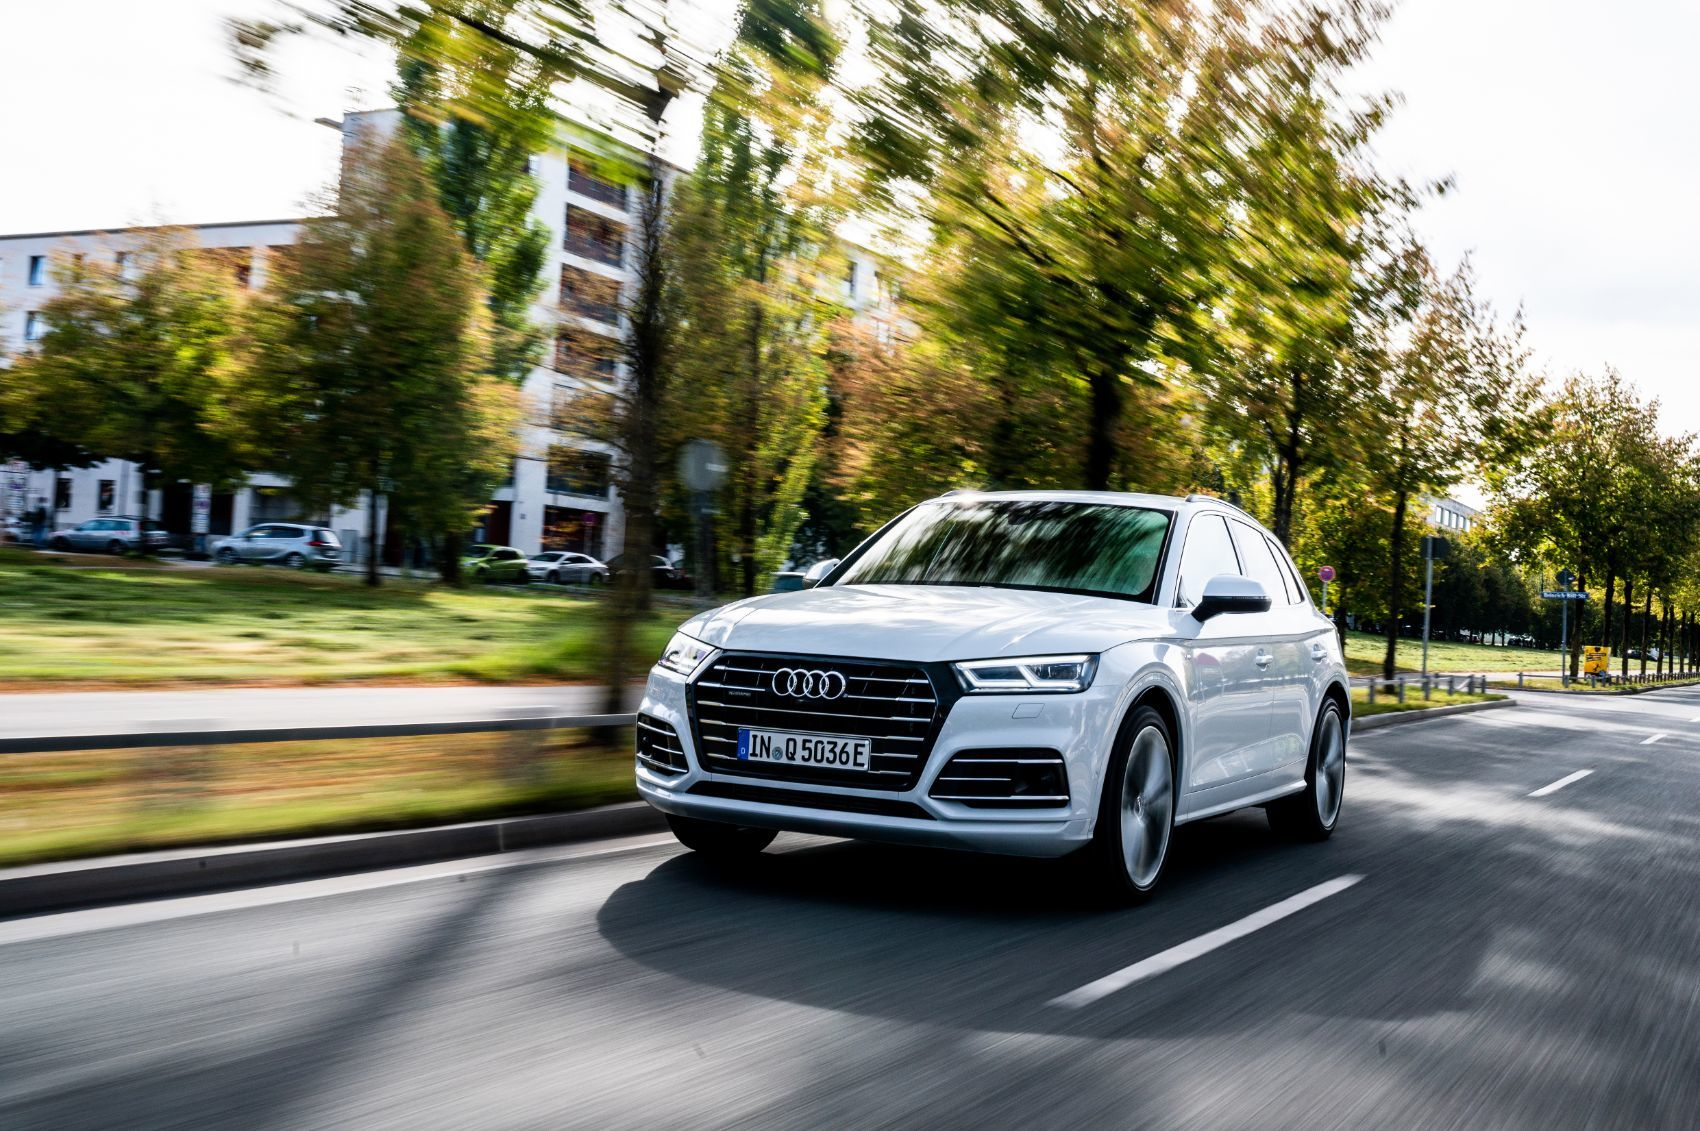 2020 Audi Q5: New Plug-In Hybrid Option Now Available 15